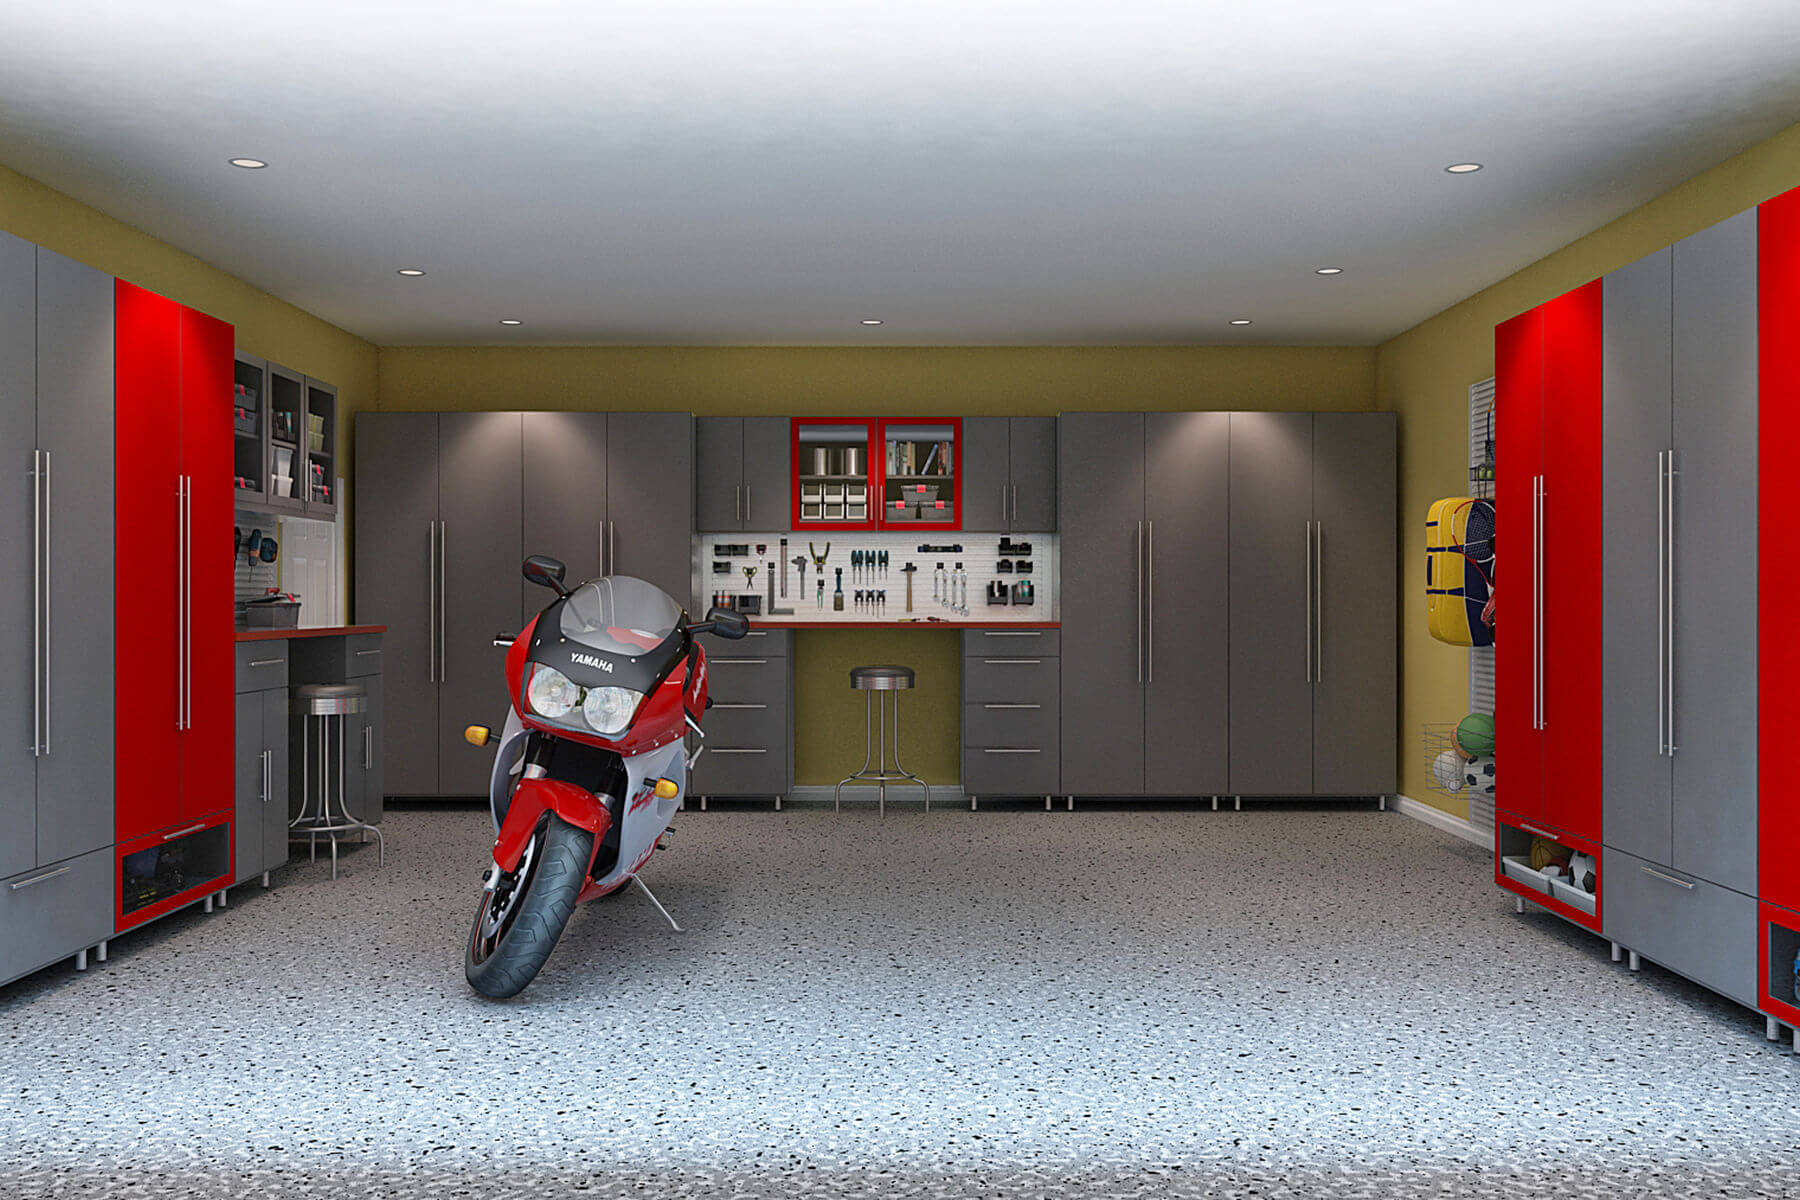 29 garage storage ideas plus 3 garage man caves the running theme of this garage is the red and gray combination of colors in its